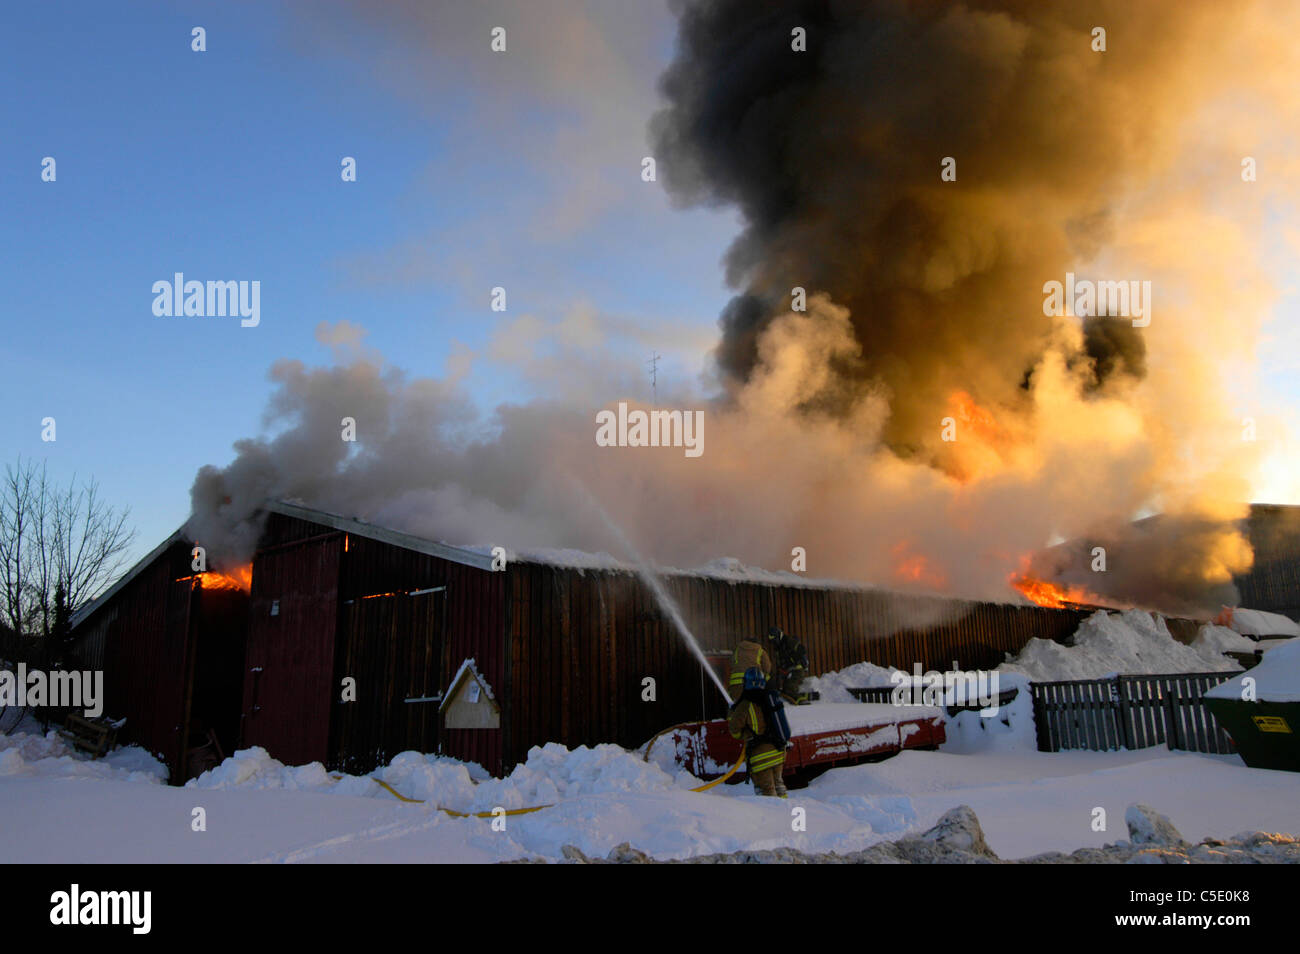 House fire being extinguish against blue sky in winter - Stock Image